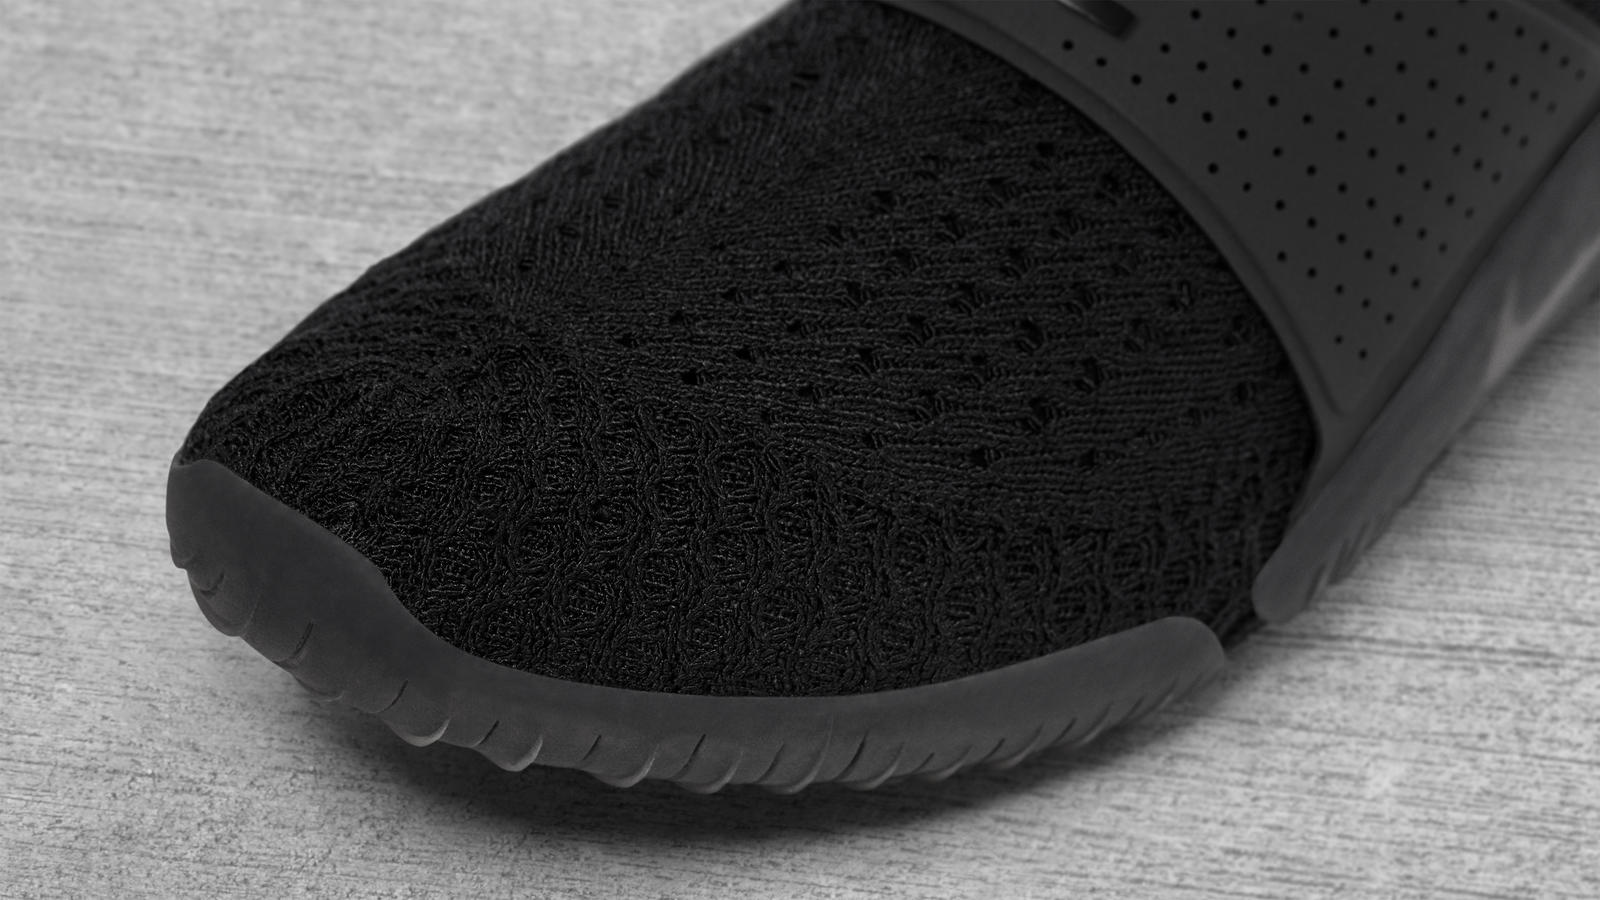 info for 146c9 2c4be The womens NikeLab City Knife 3 Flyknit will be available May 11 on the  Nike+ app, Nike.com and at select retailers. Every pair also comes packaged  with a ...